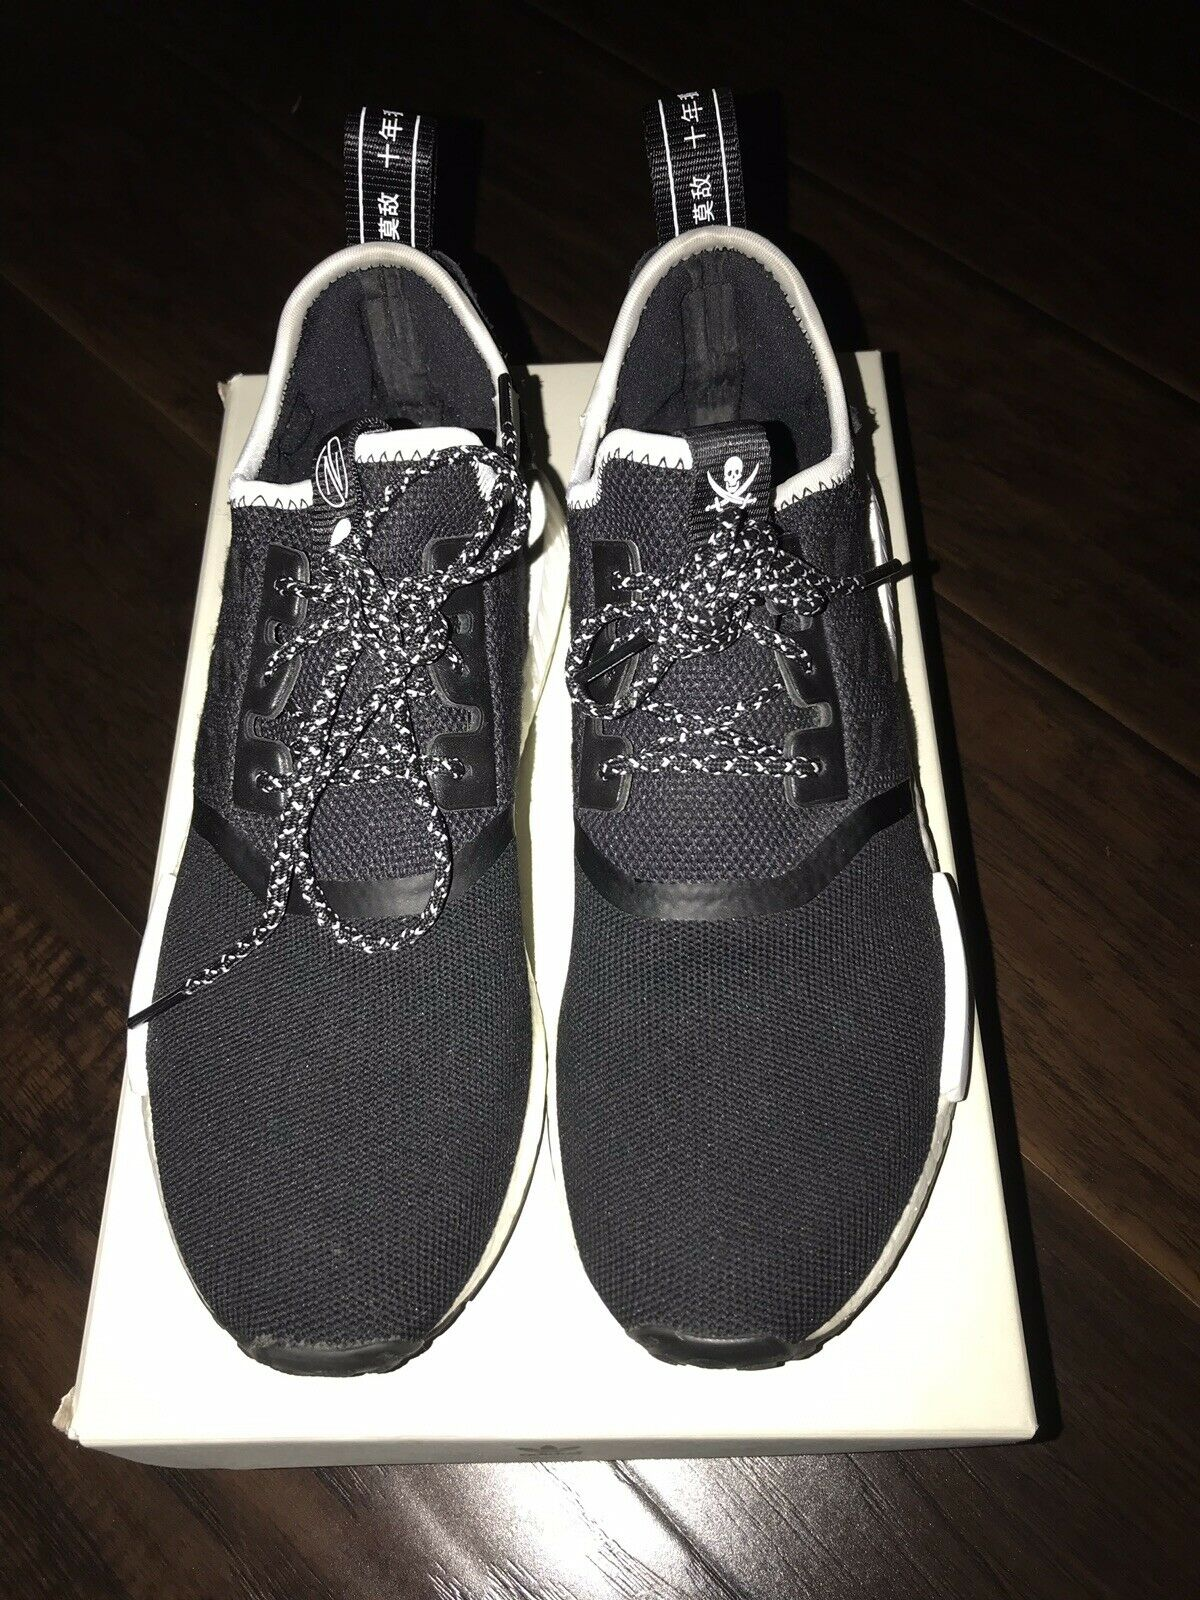 VNDS Adidas NMD R1 Invincible x Neighborhood CQ1775 Black White shoes Size US 8